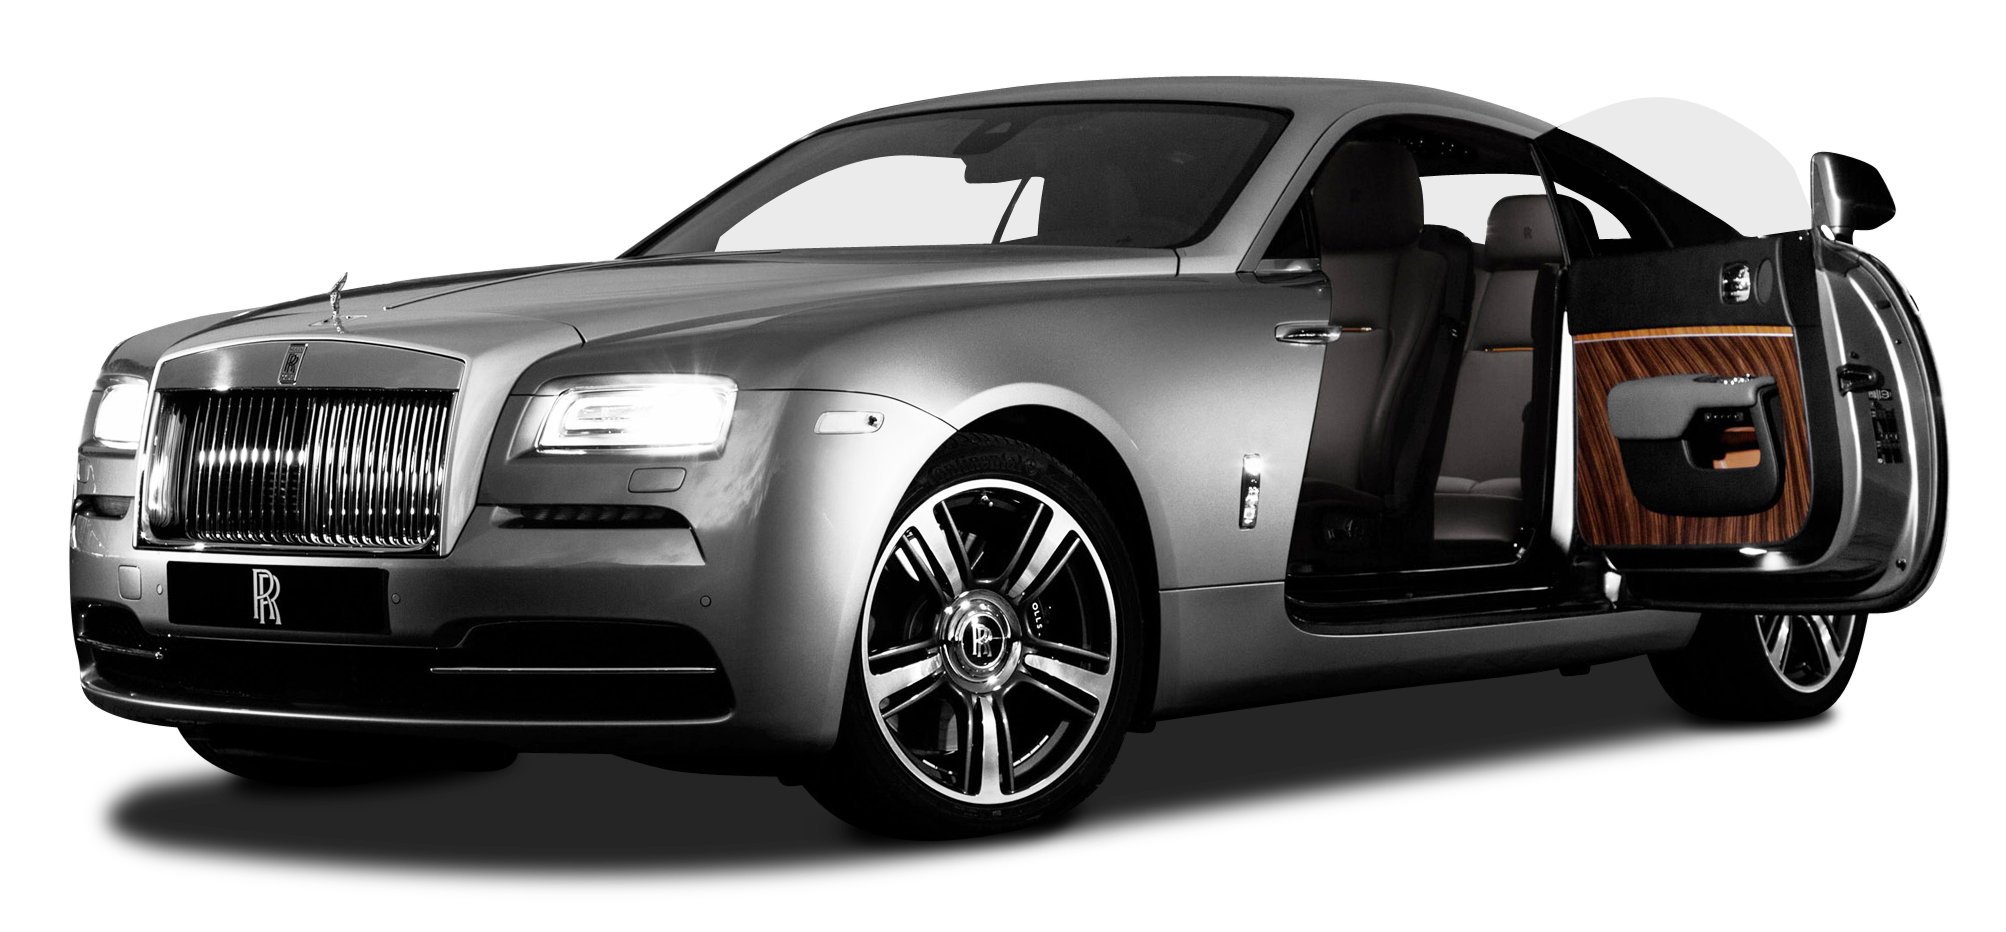 Silver car clipart image freeuse Rolls Royce Wraith Silver Car PNG Image - PurePNG | Free transparent ... image freeuse